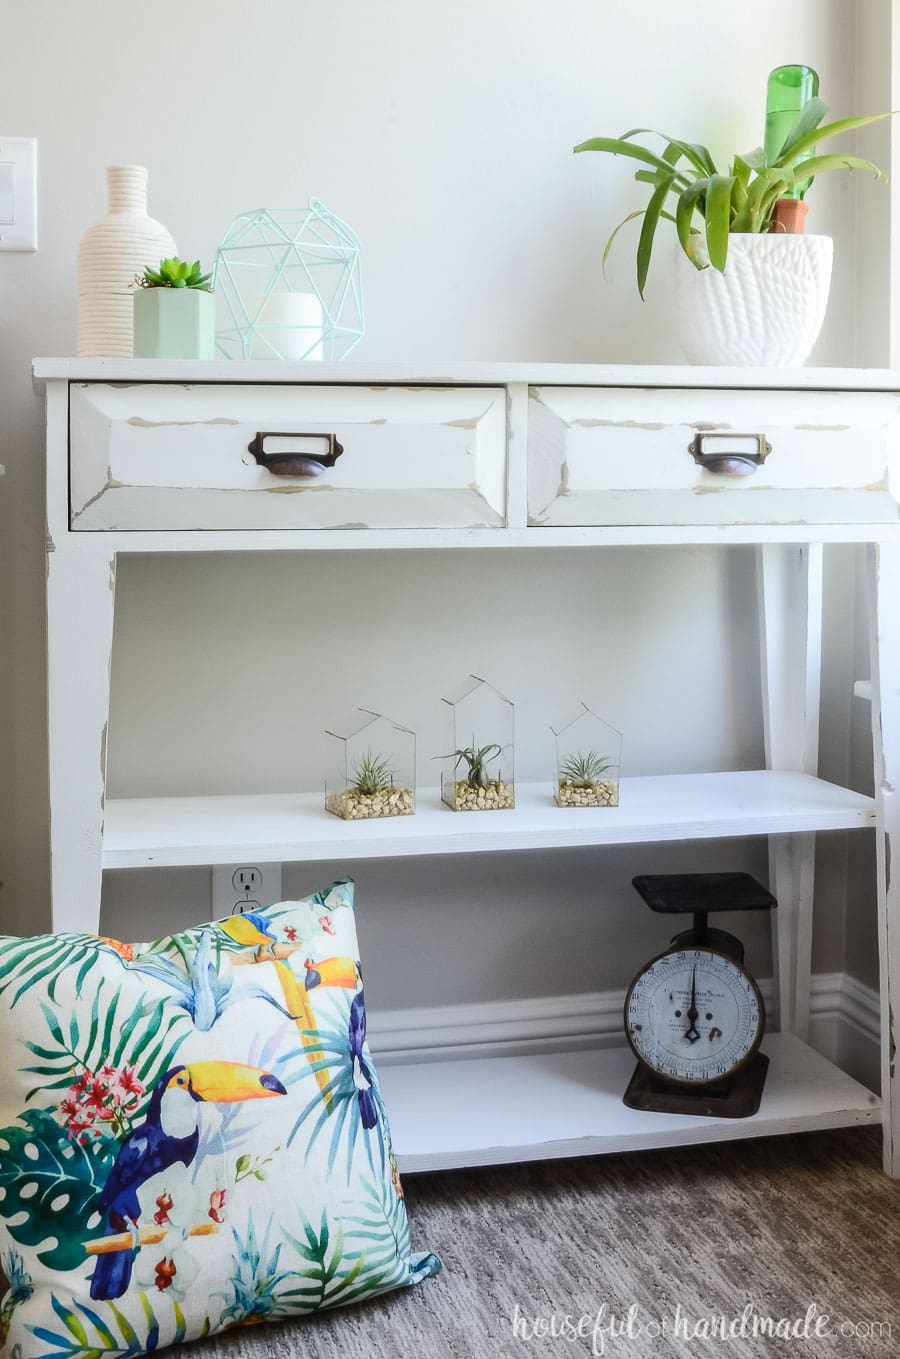 Shopping your home for accessories is an easy way to redecorate a room on a budget. See how we did that to make a tropical living room for summer. Housefulofhandmade.com